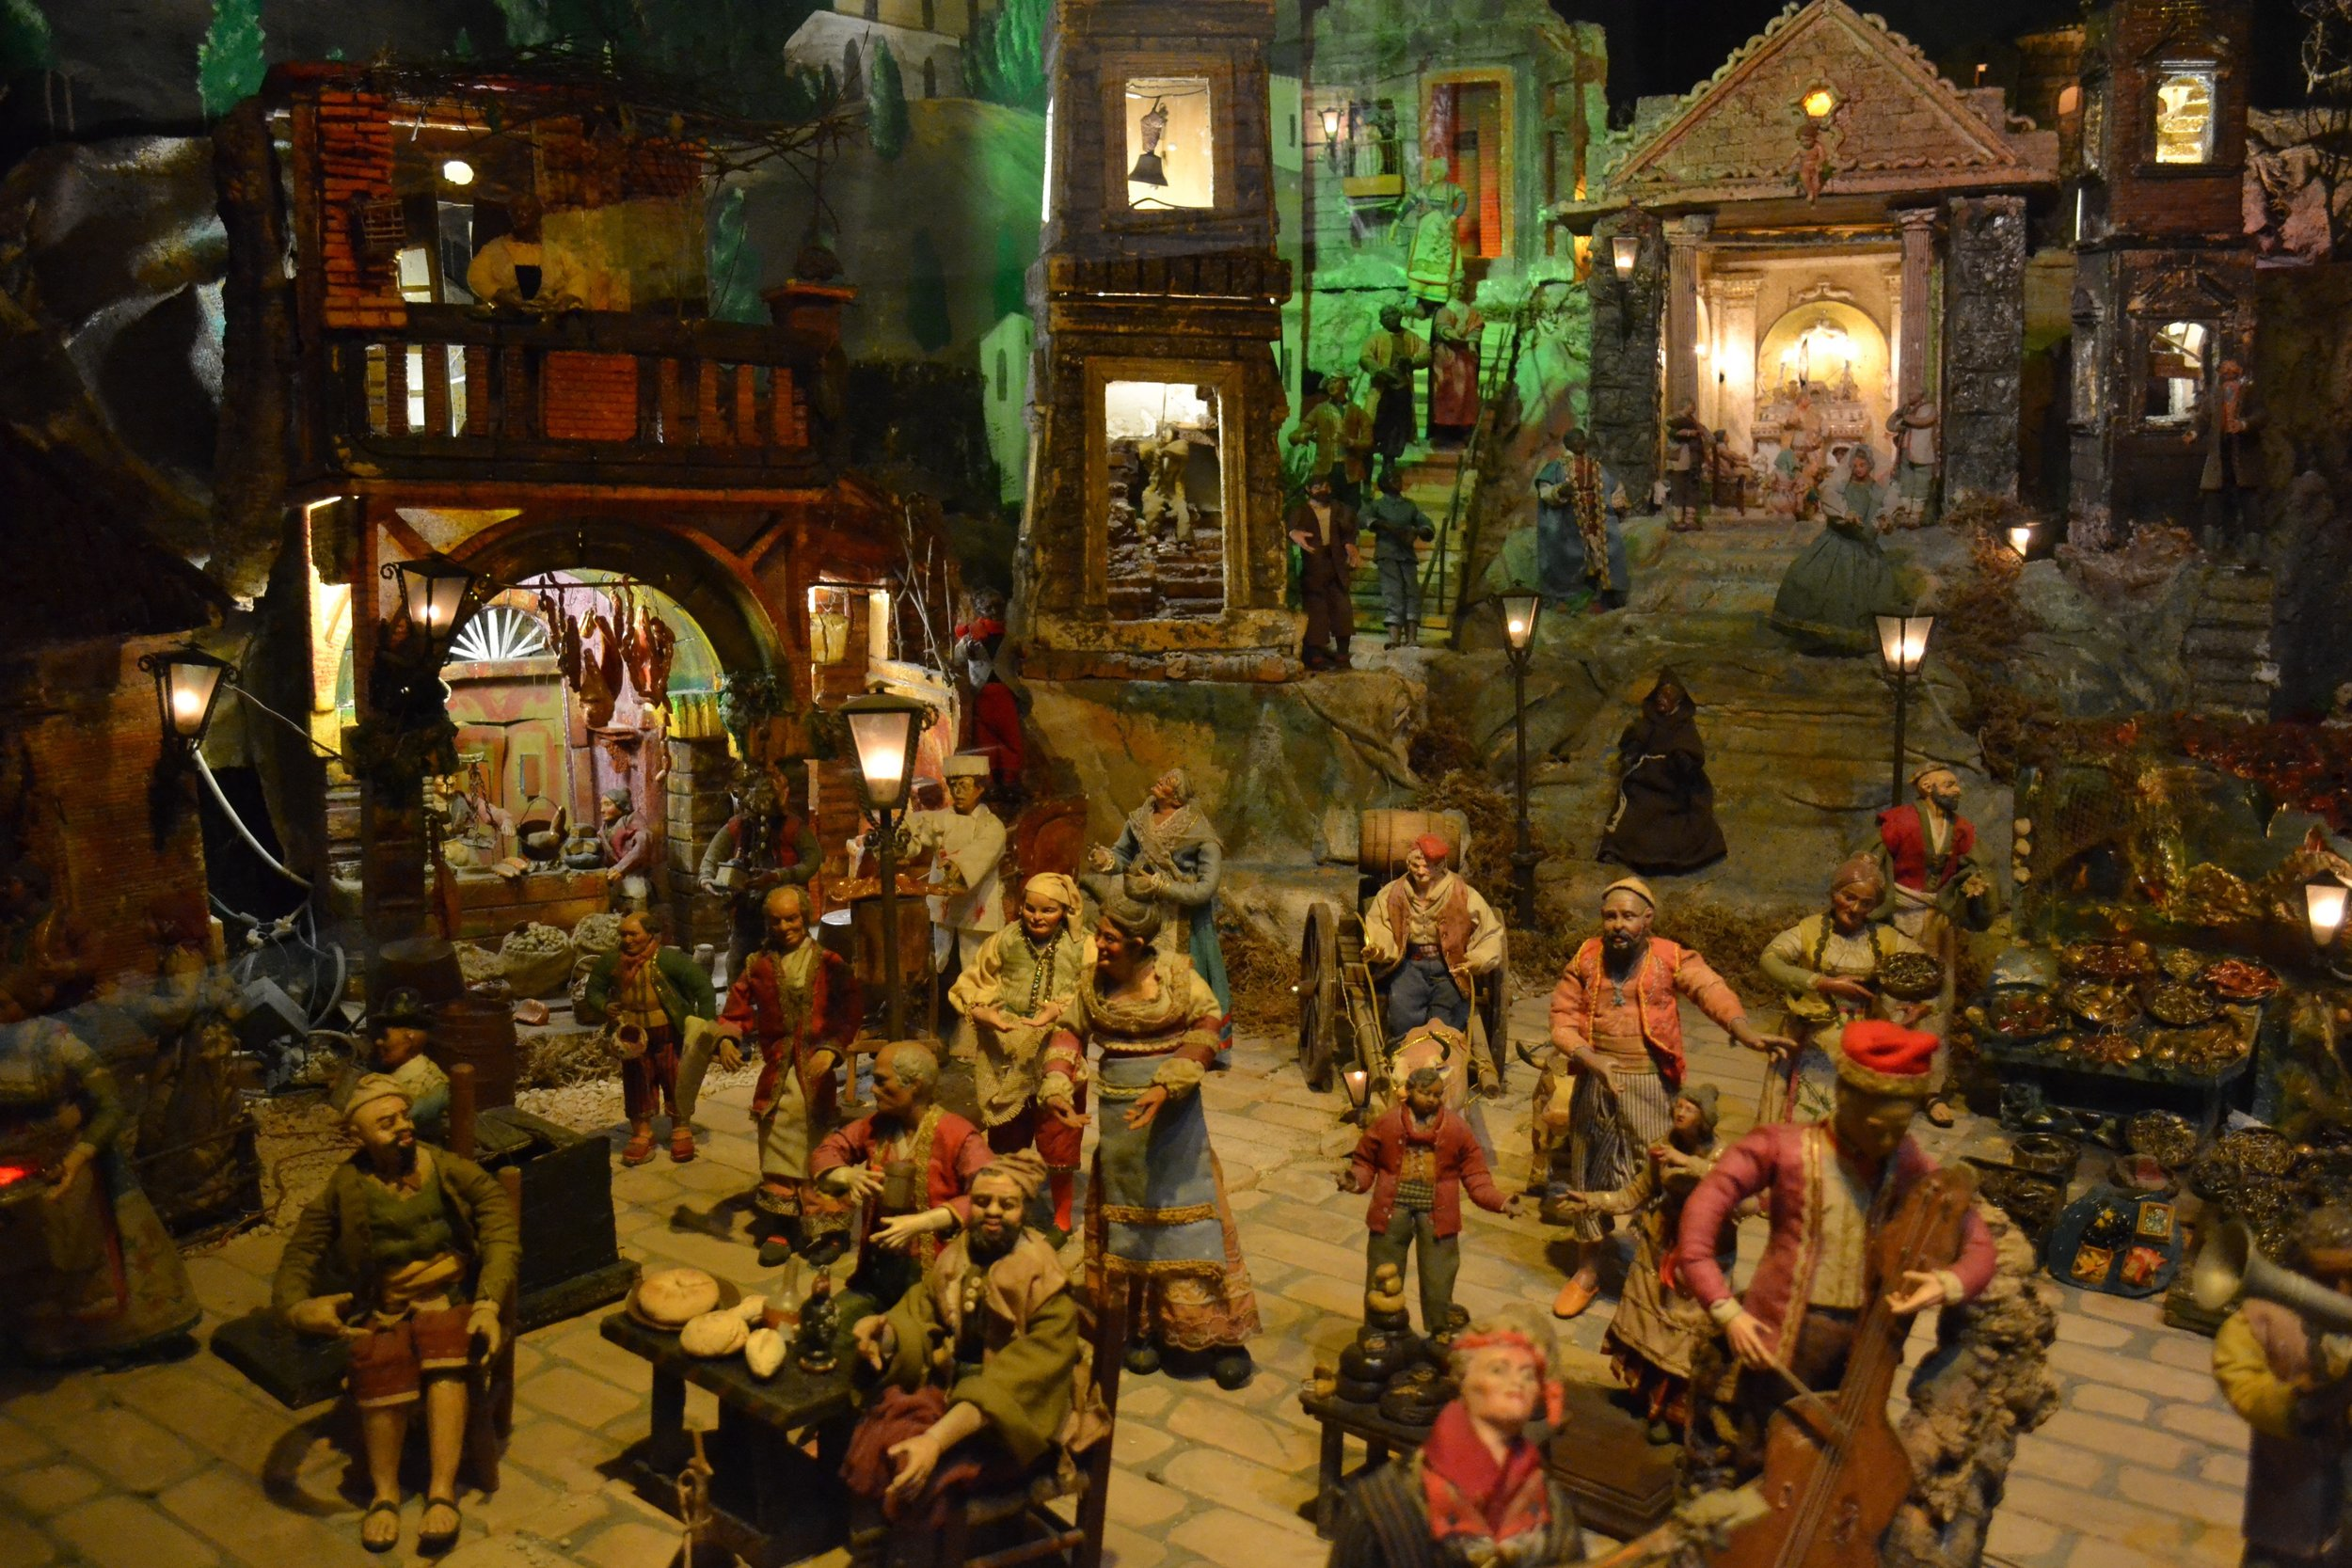 One of the famed Neapolitan presepio that depicts the Nativity within the context of 17th and 18th century Neapolitan life.